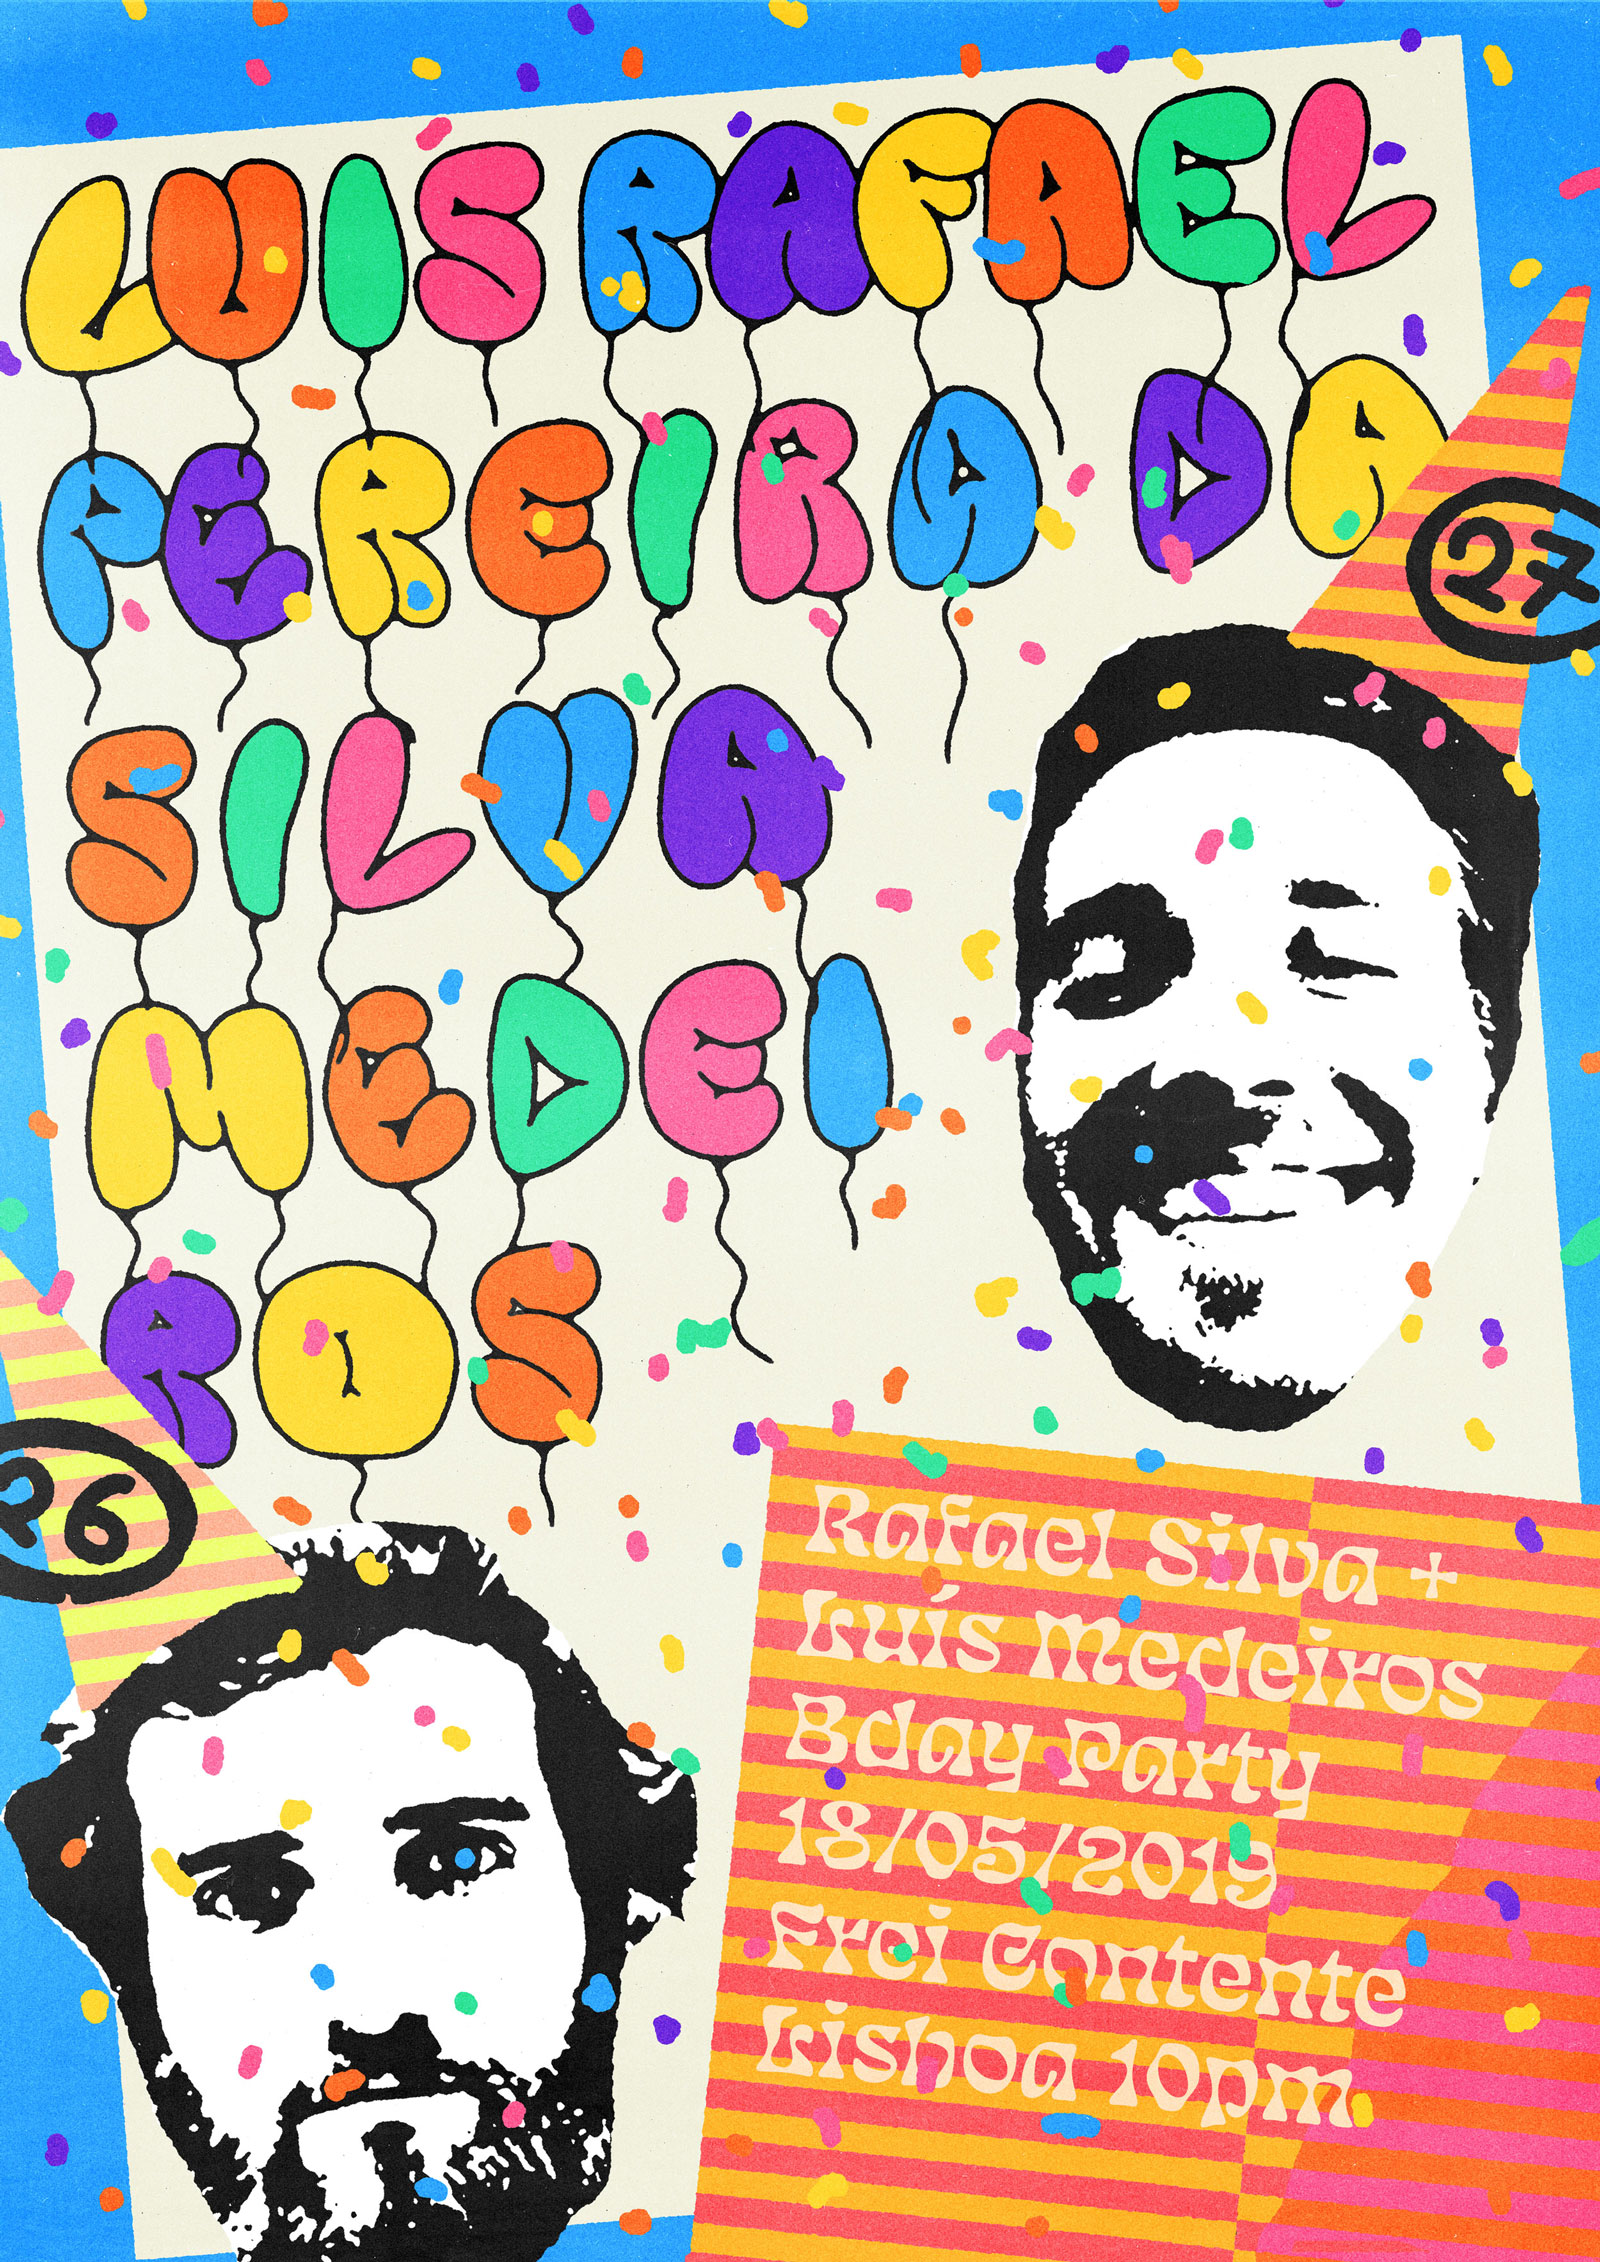 Luis + Rafael Birthday party poster